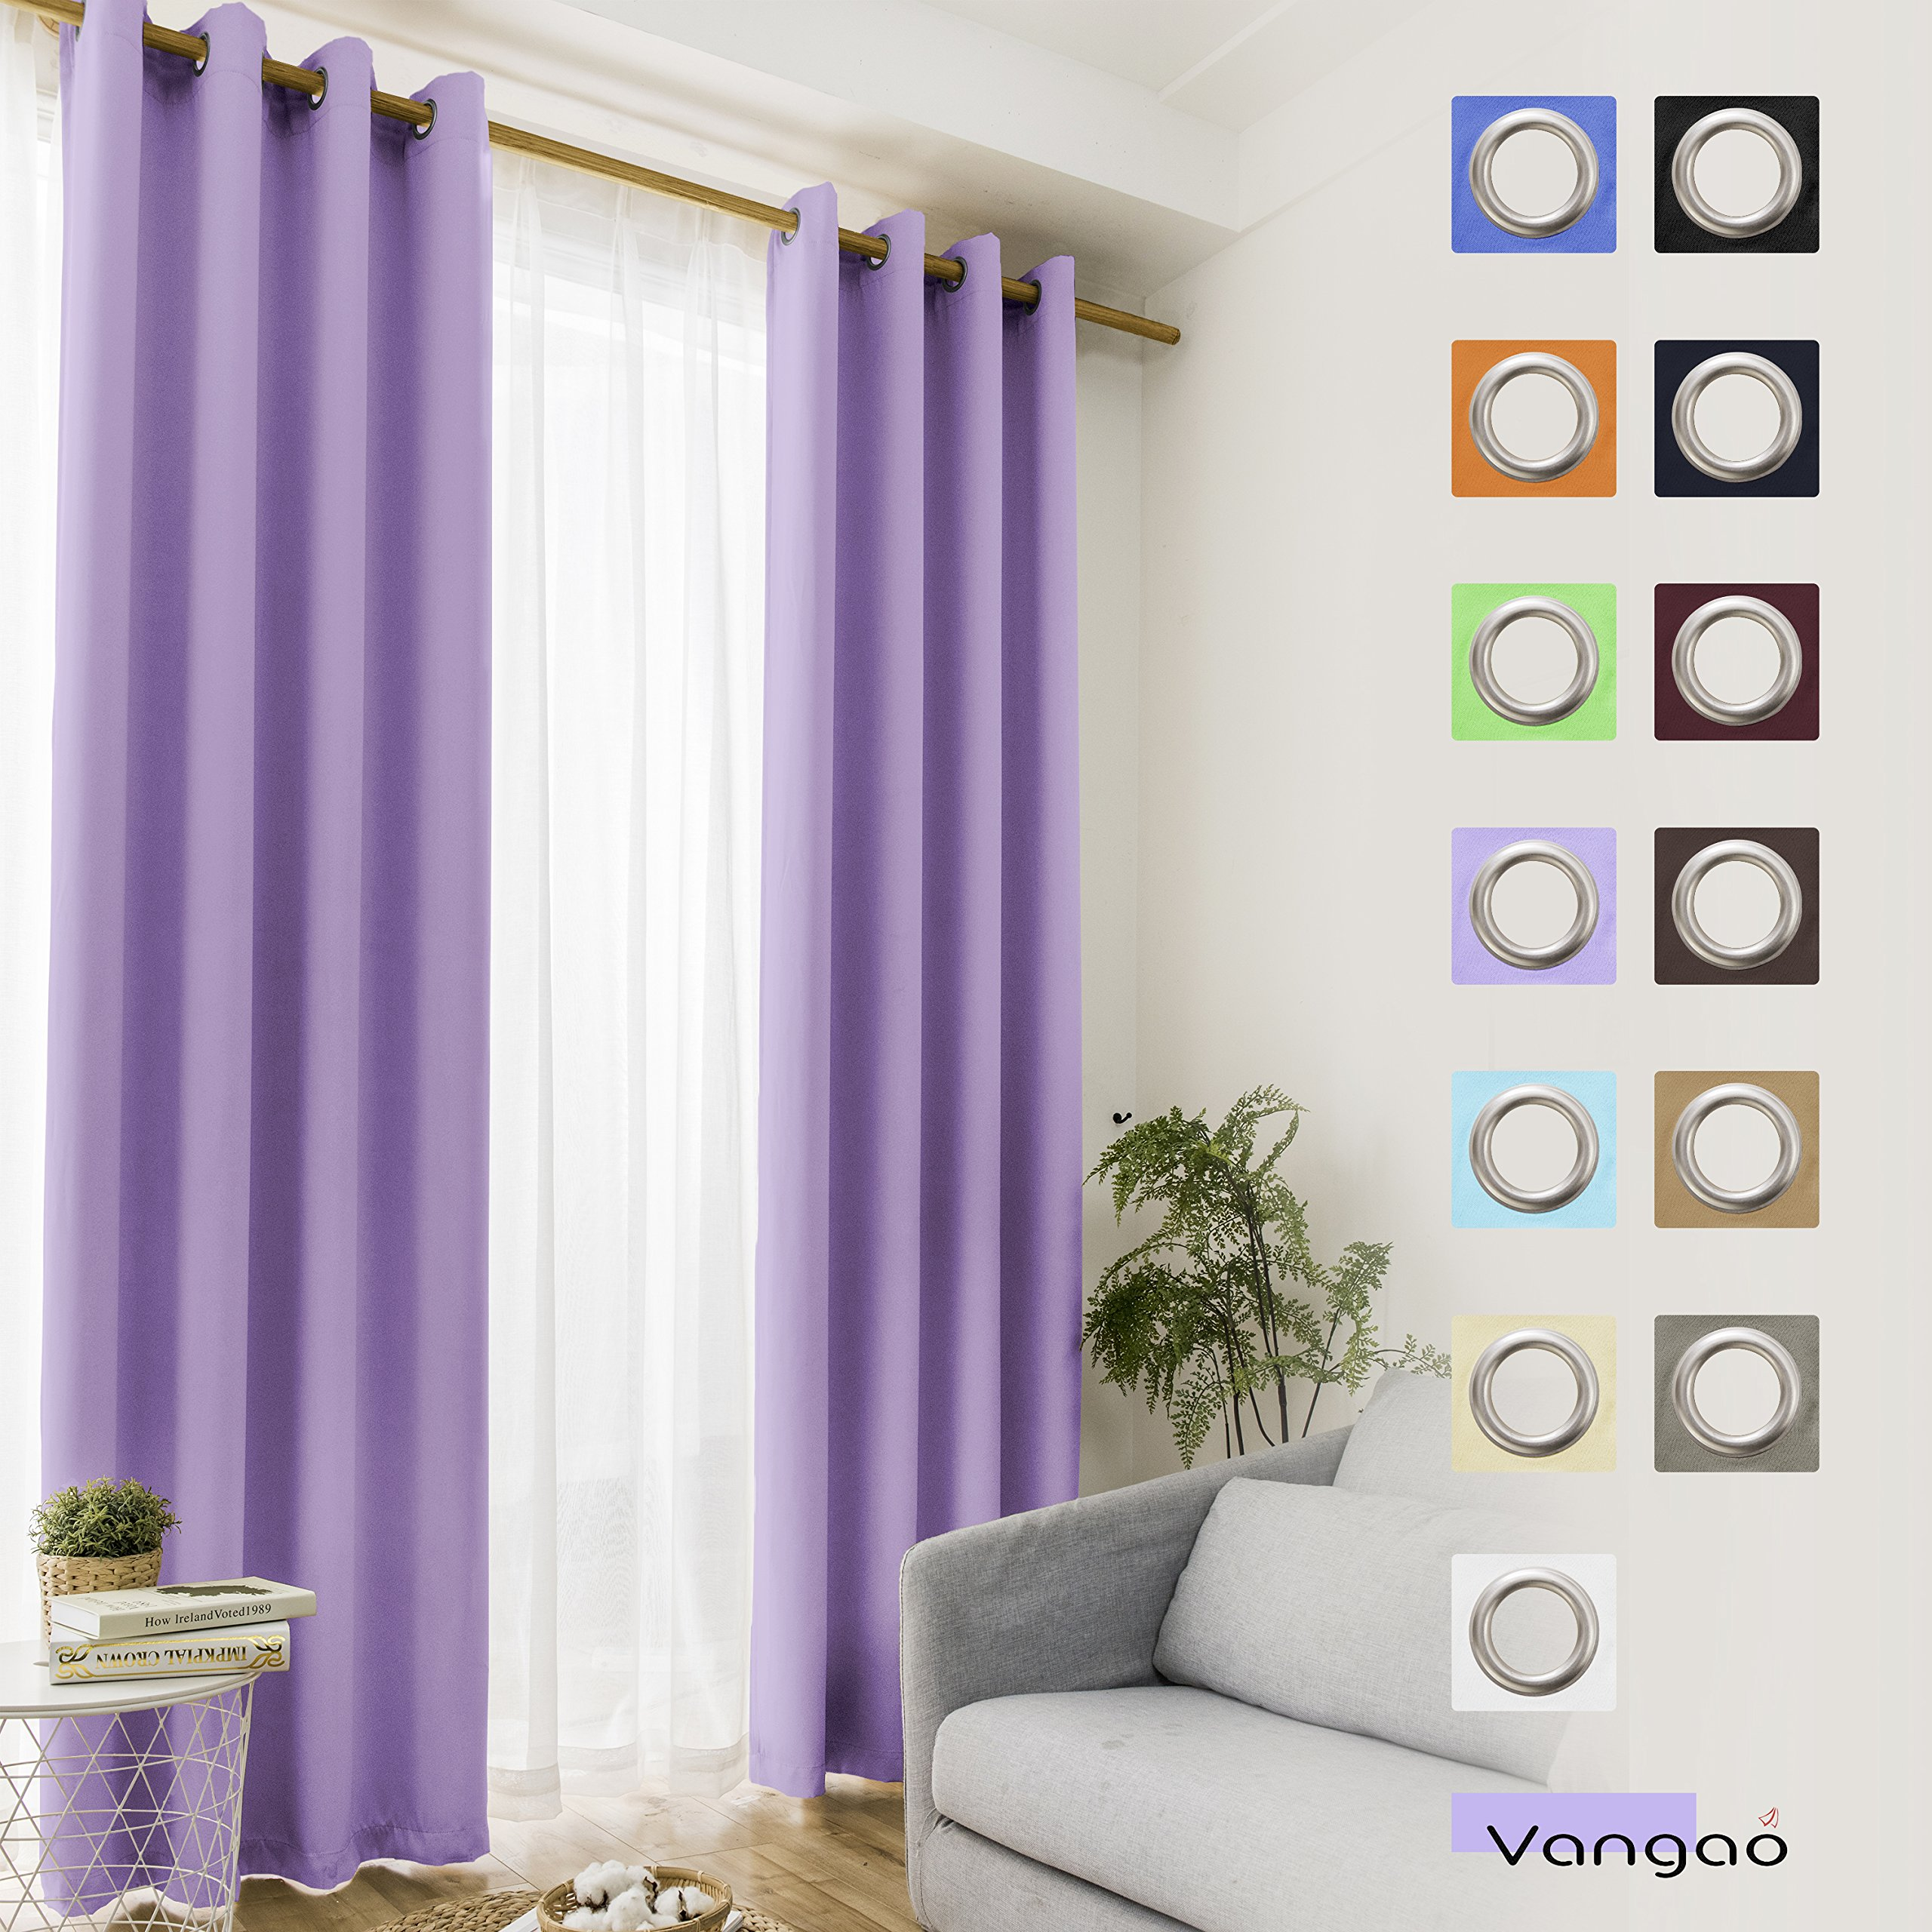 Vangao Light Blocking Lilac Blackout Curtains Girls Room Darkening ...